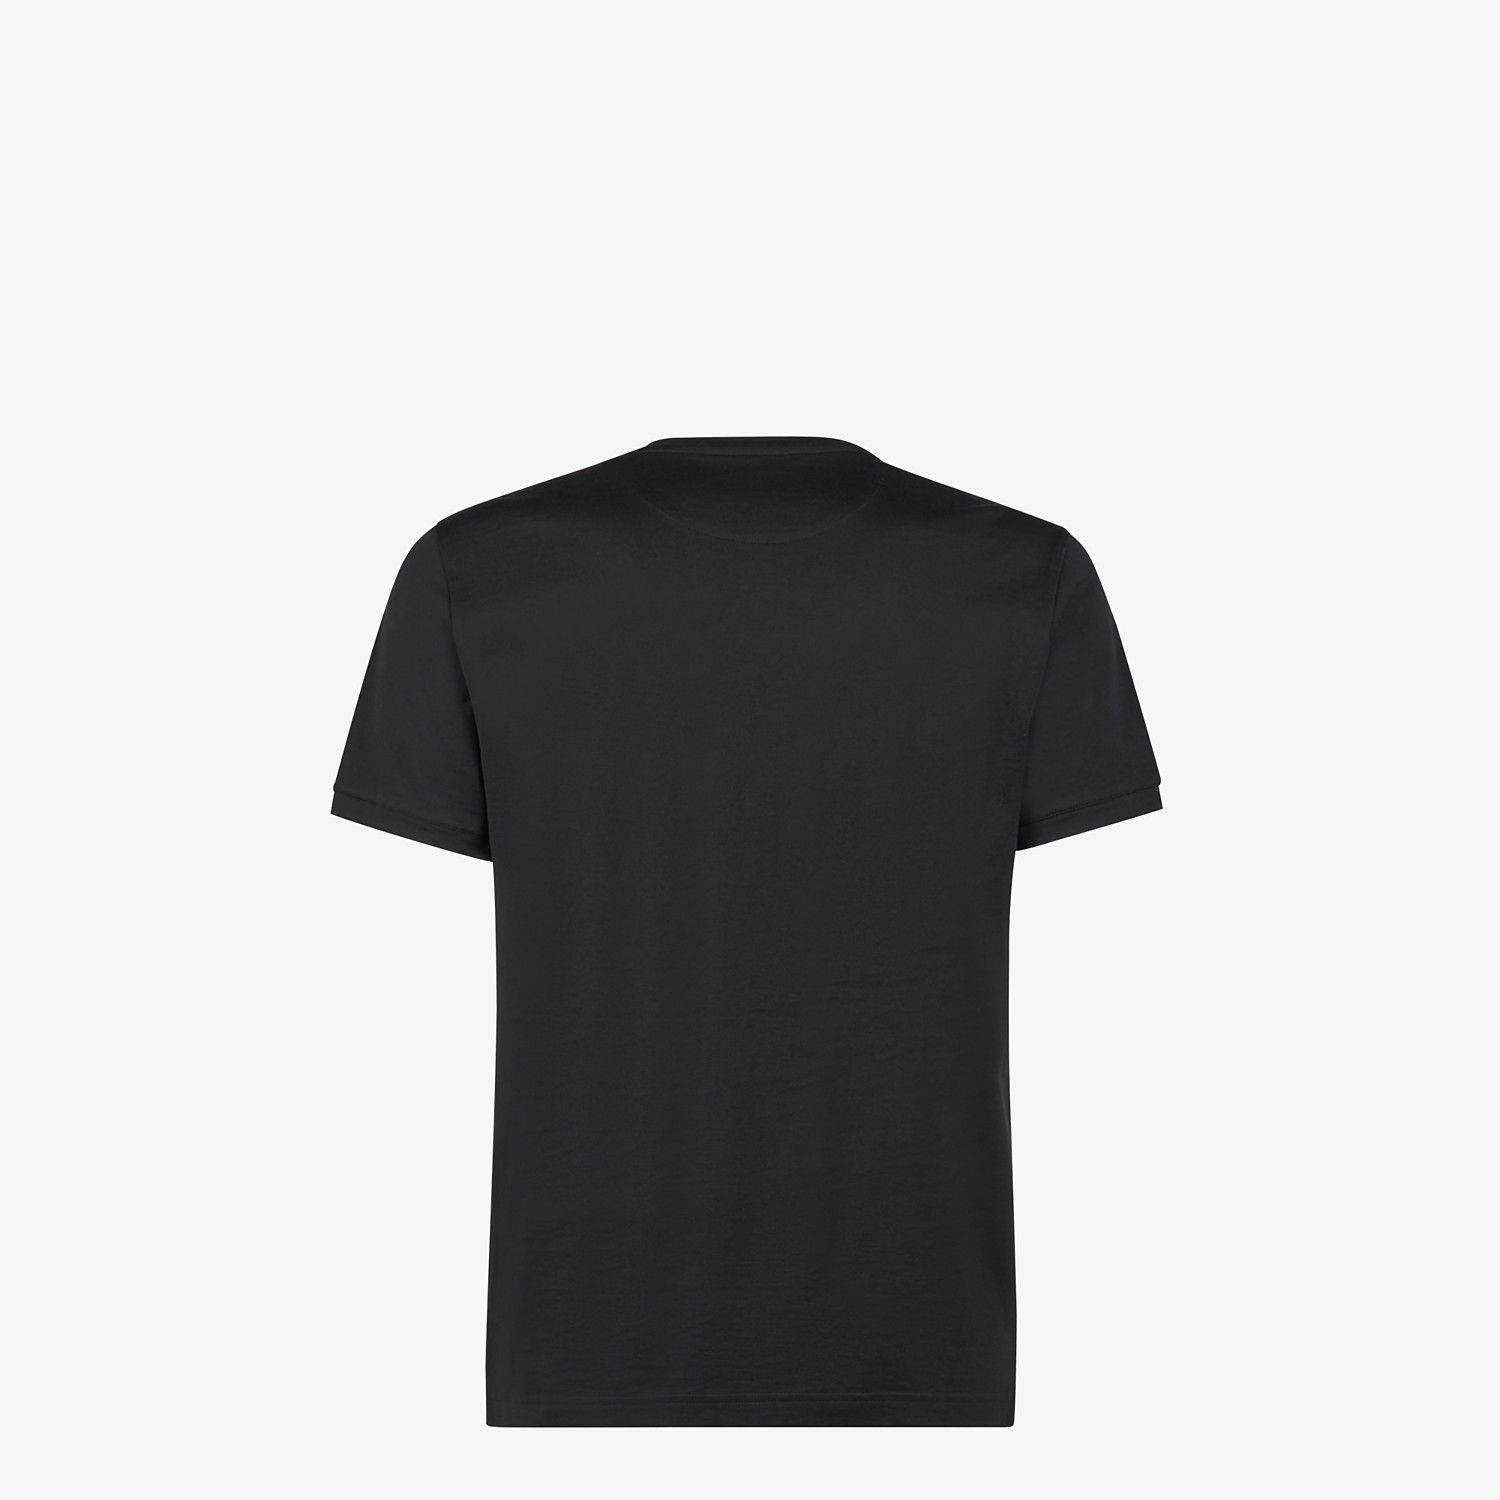 FENDI T-SHIRT - Black jersey T-shirt - view 2 detail